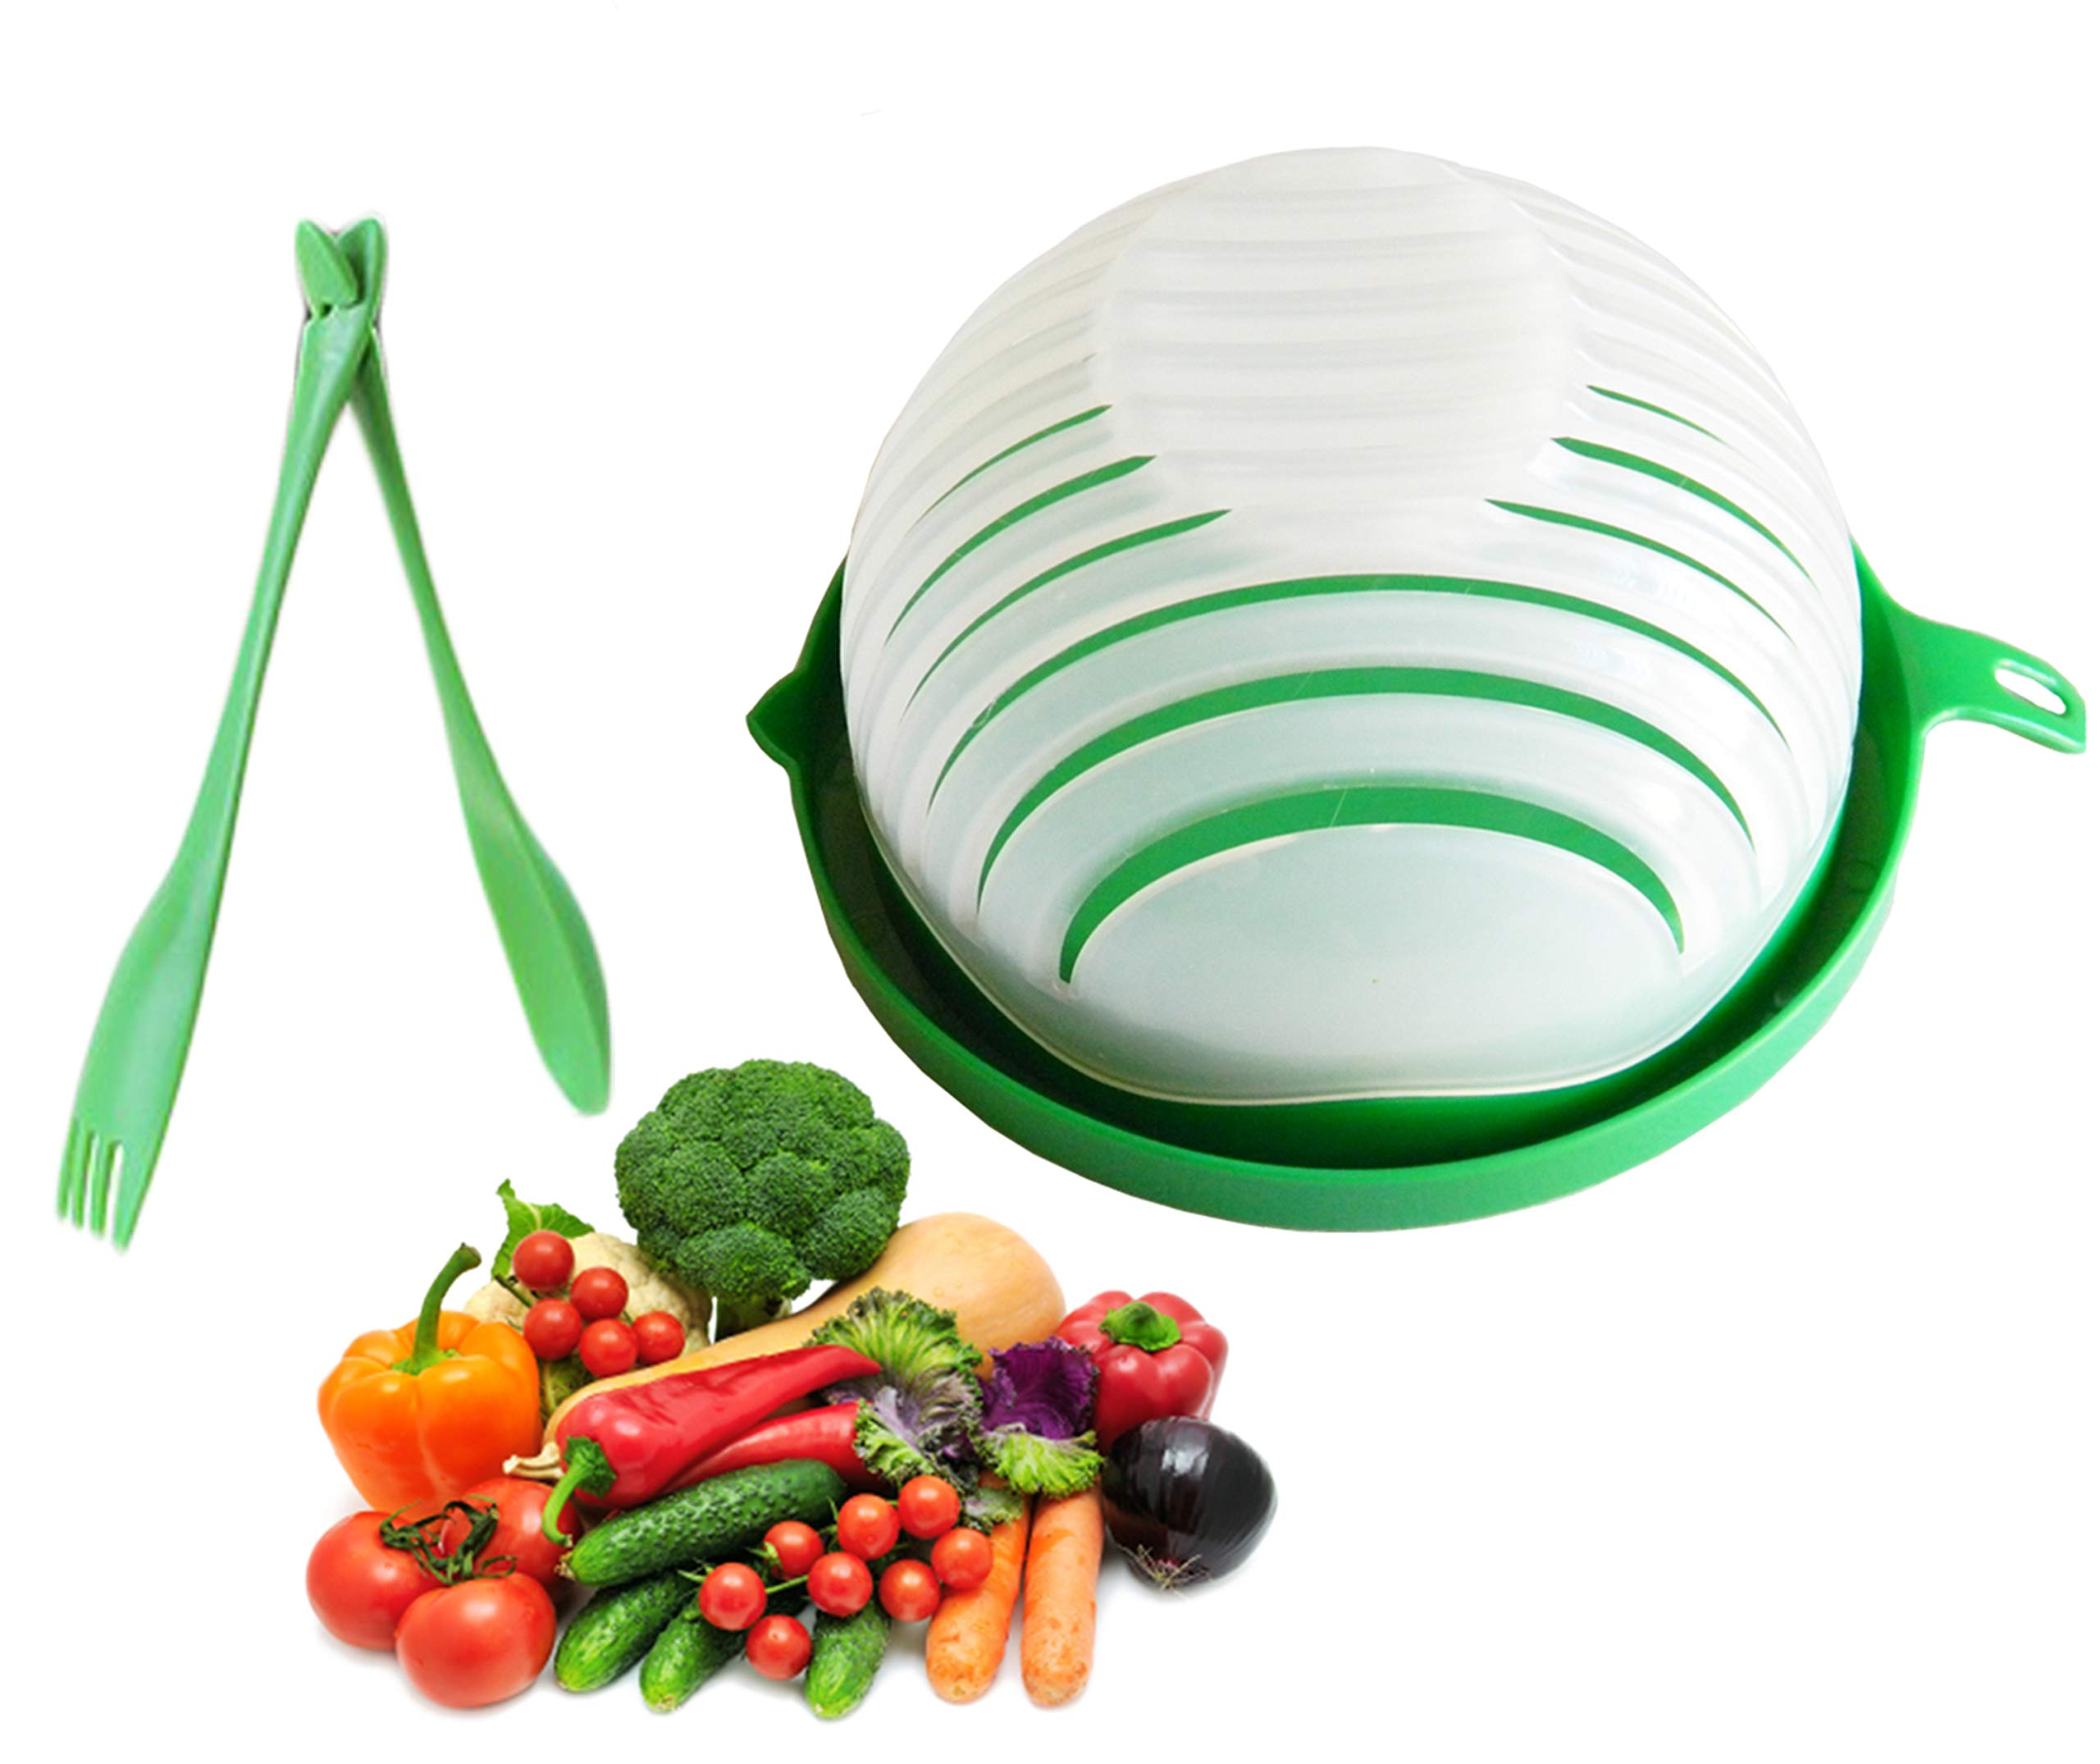 5 in 1 Salad Cutter Bowl | 60 Second Salad | Easy Slicer Chopper Strainer Cutting Board All in One | Strong and Durable| Fruit and Vegetable Cutter | Safe and Non-Toxic Food Grade BPA Free Material by Sugar Syrup